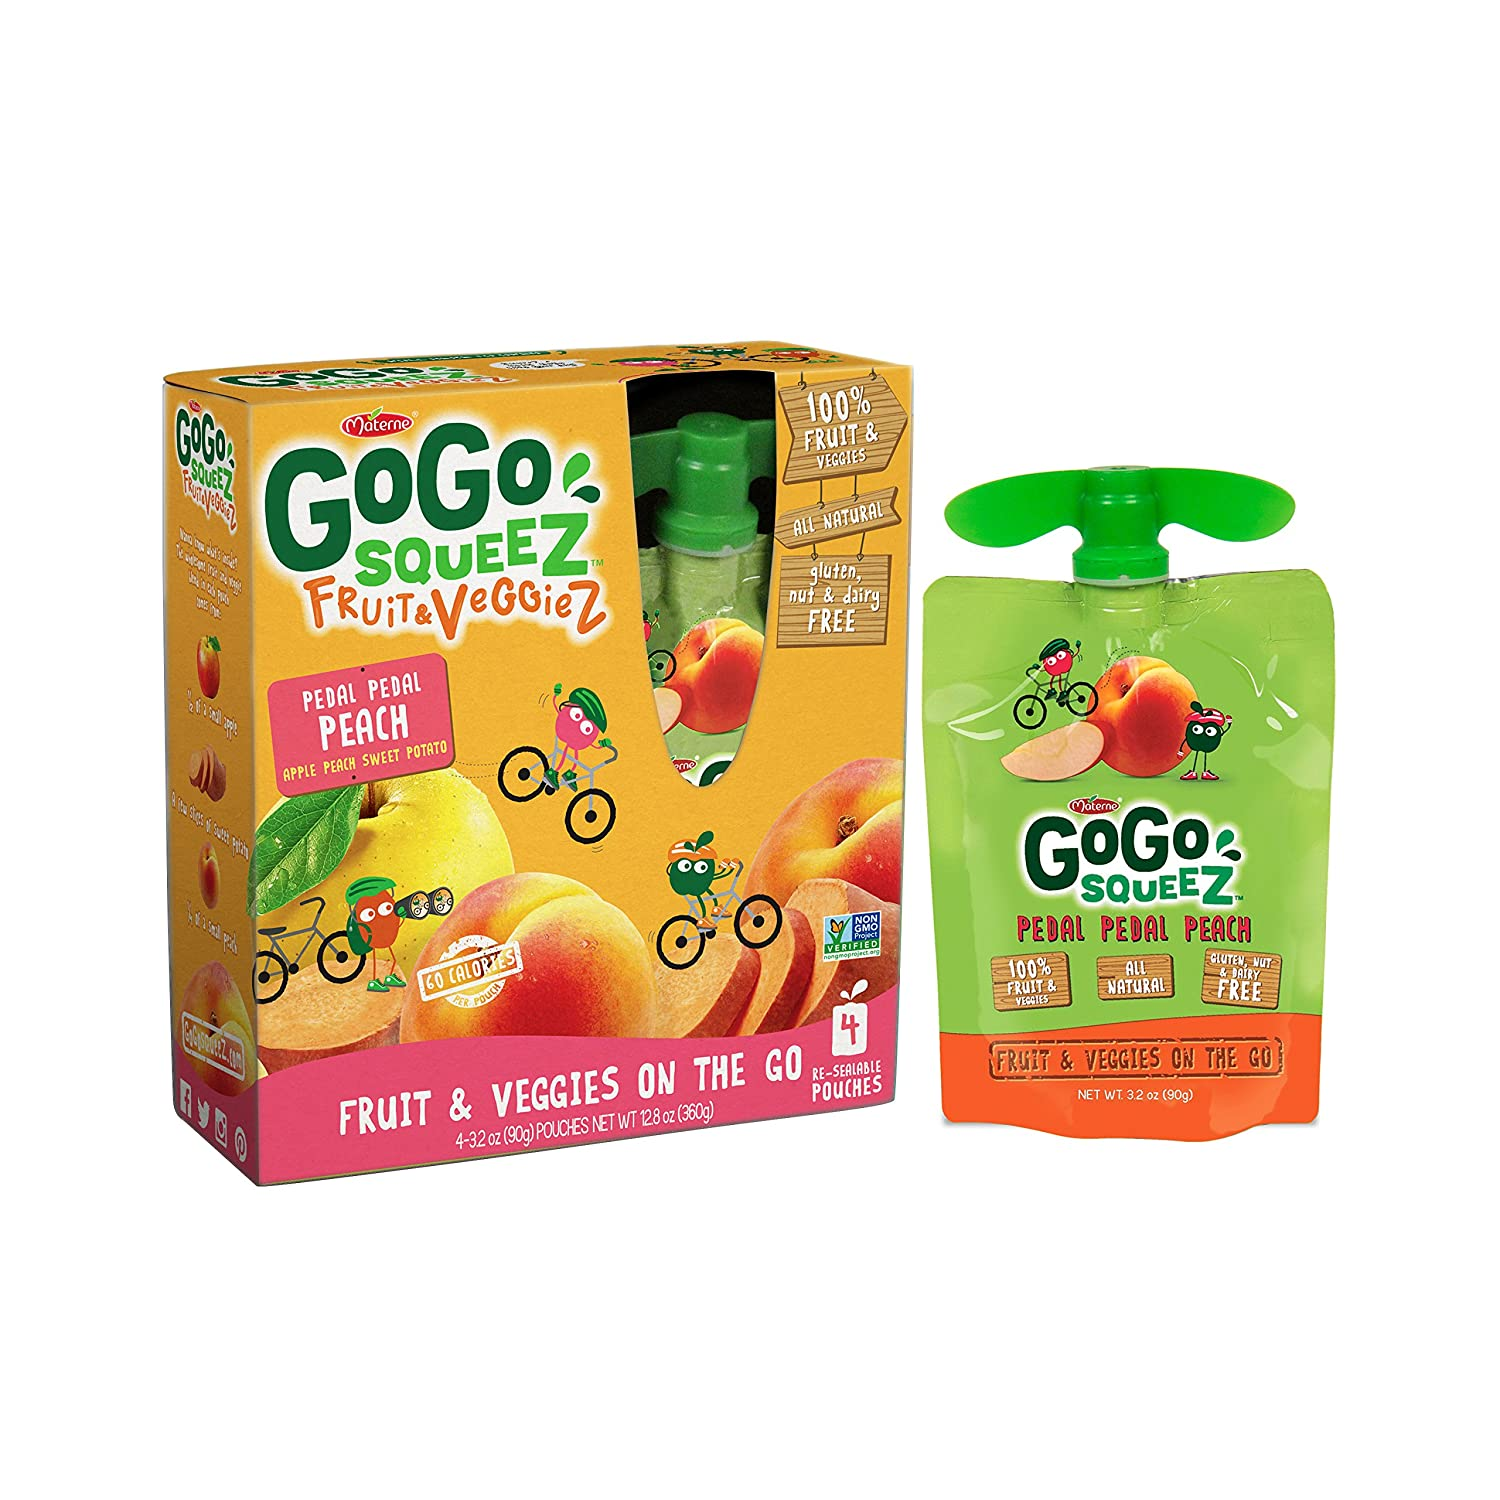 Go Go Squee Z Fruit & Veggie Z On The Go, Apple Peach Sweet Potato, 3.2 Ounce Portable Bpa Free Pouches, Gluten Free, 48 Total Pouches (12 Boxes With 4 Pouches Each) by Go Go Squee Z